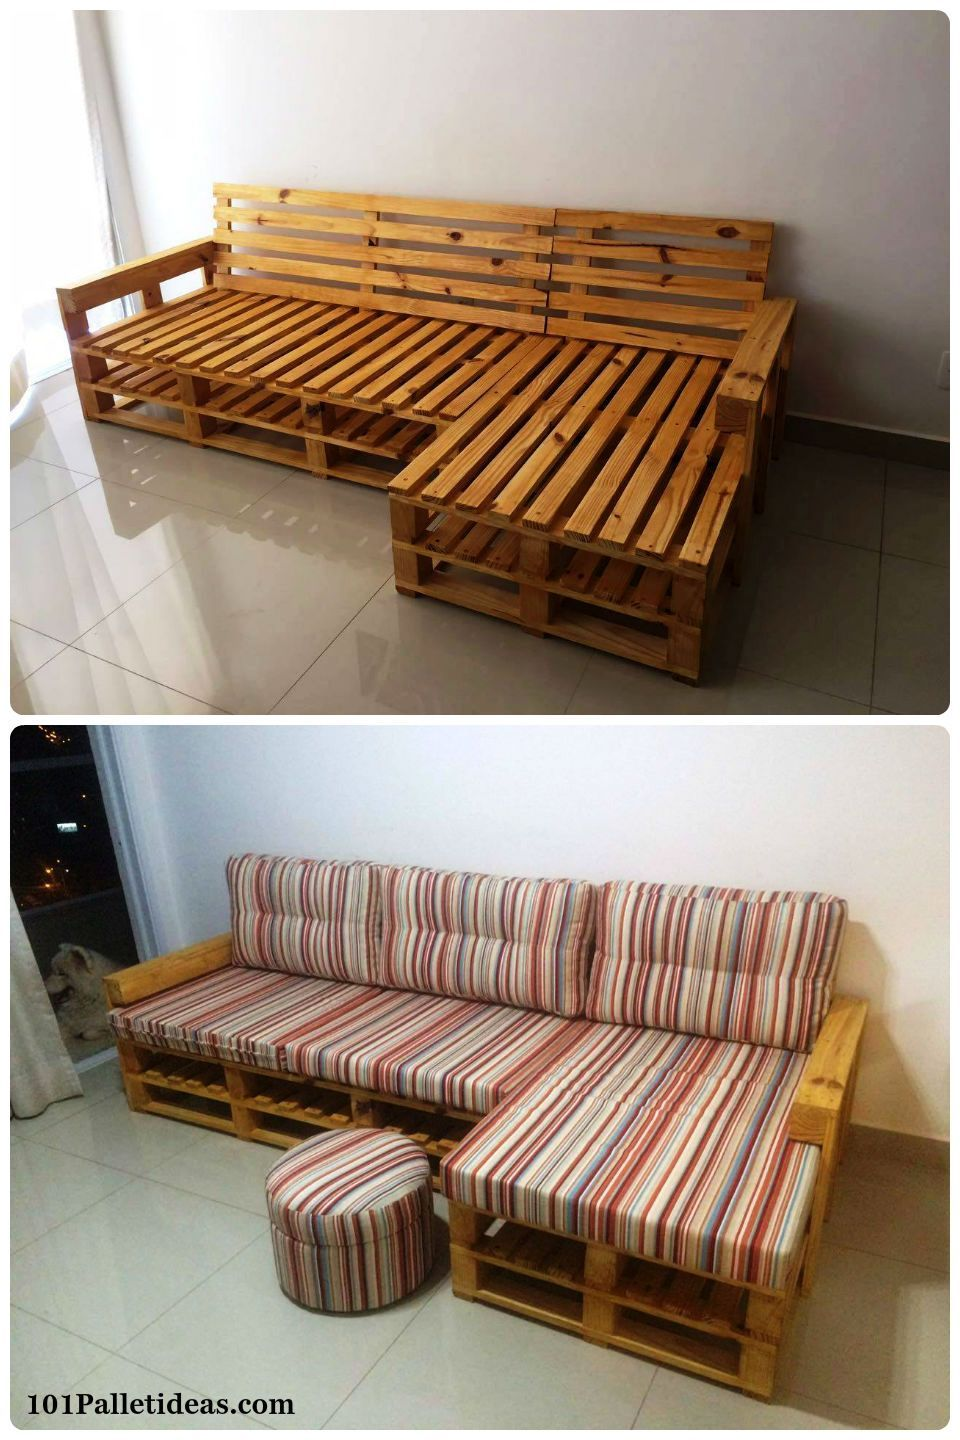 20 pallet ideas you can diy for your home pallet ideas Pallet ideas